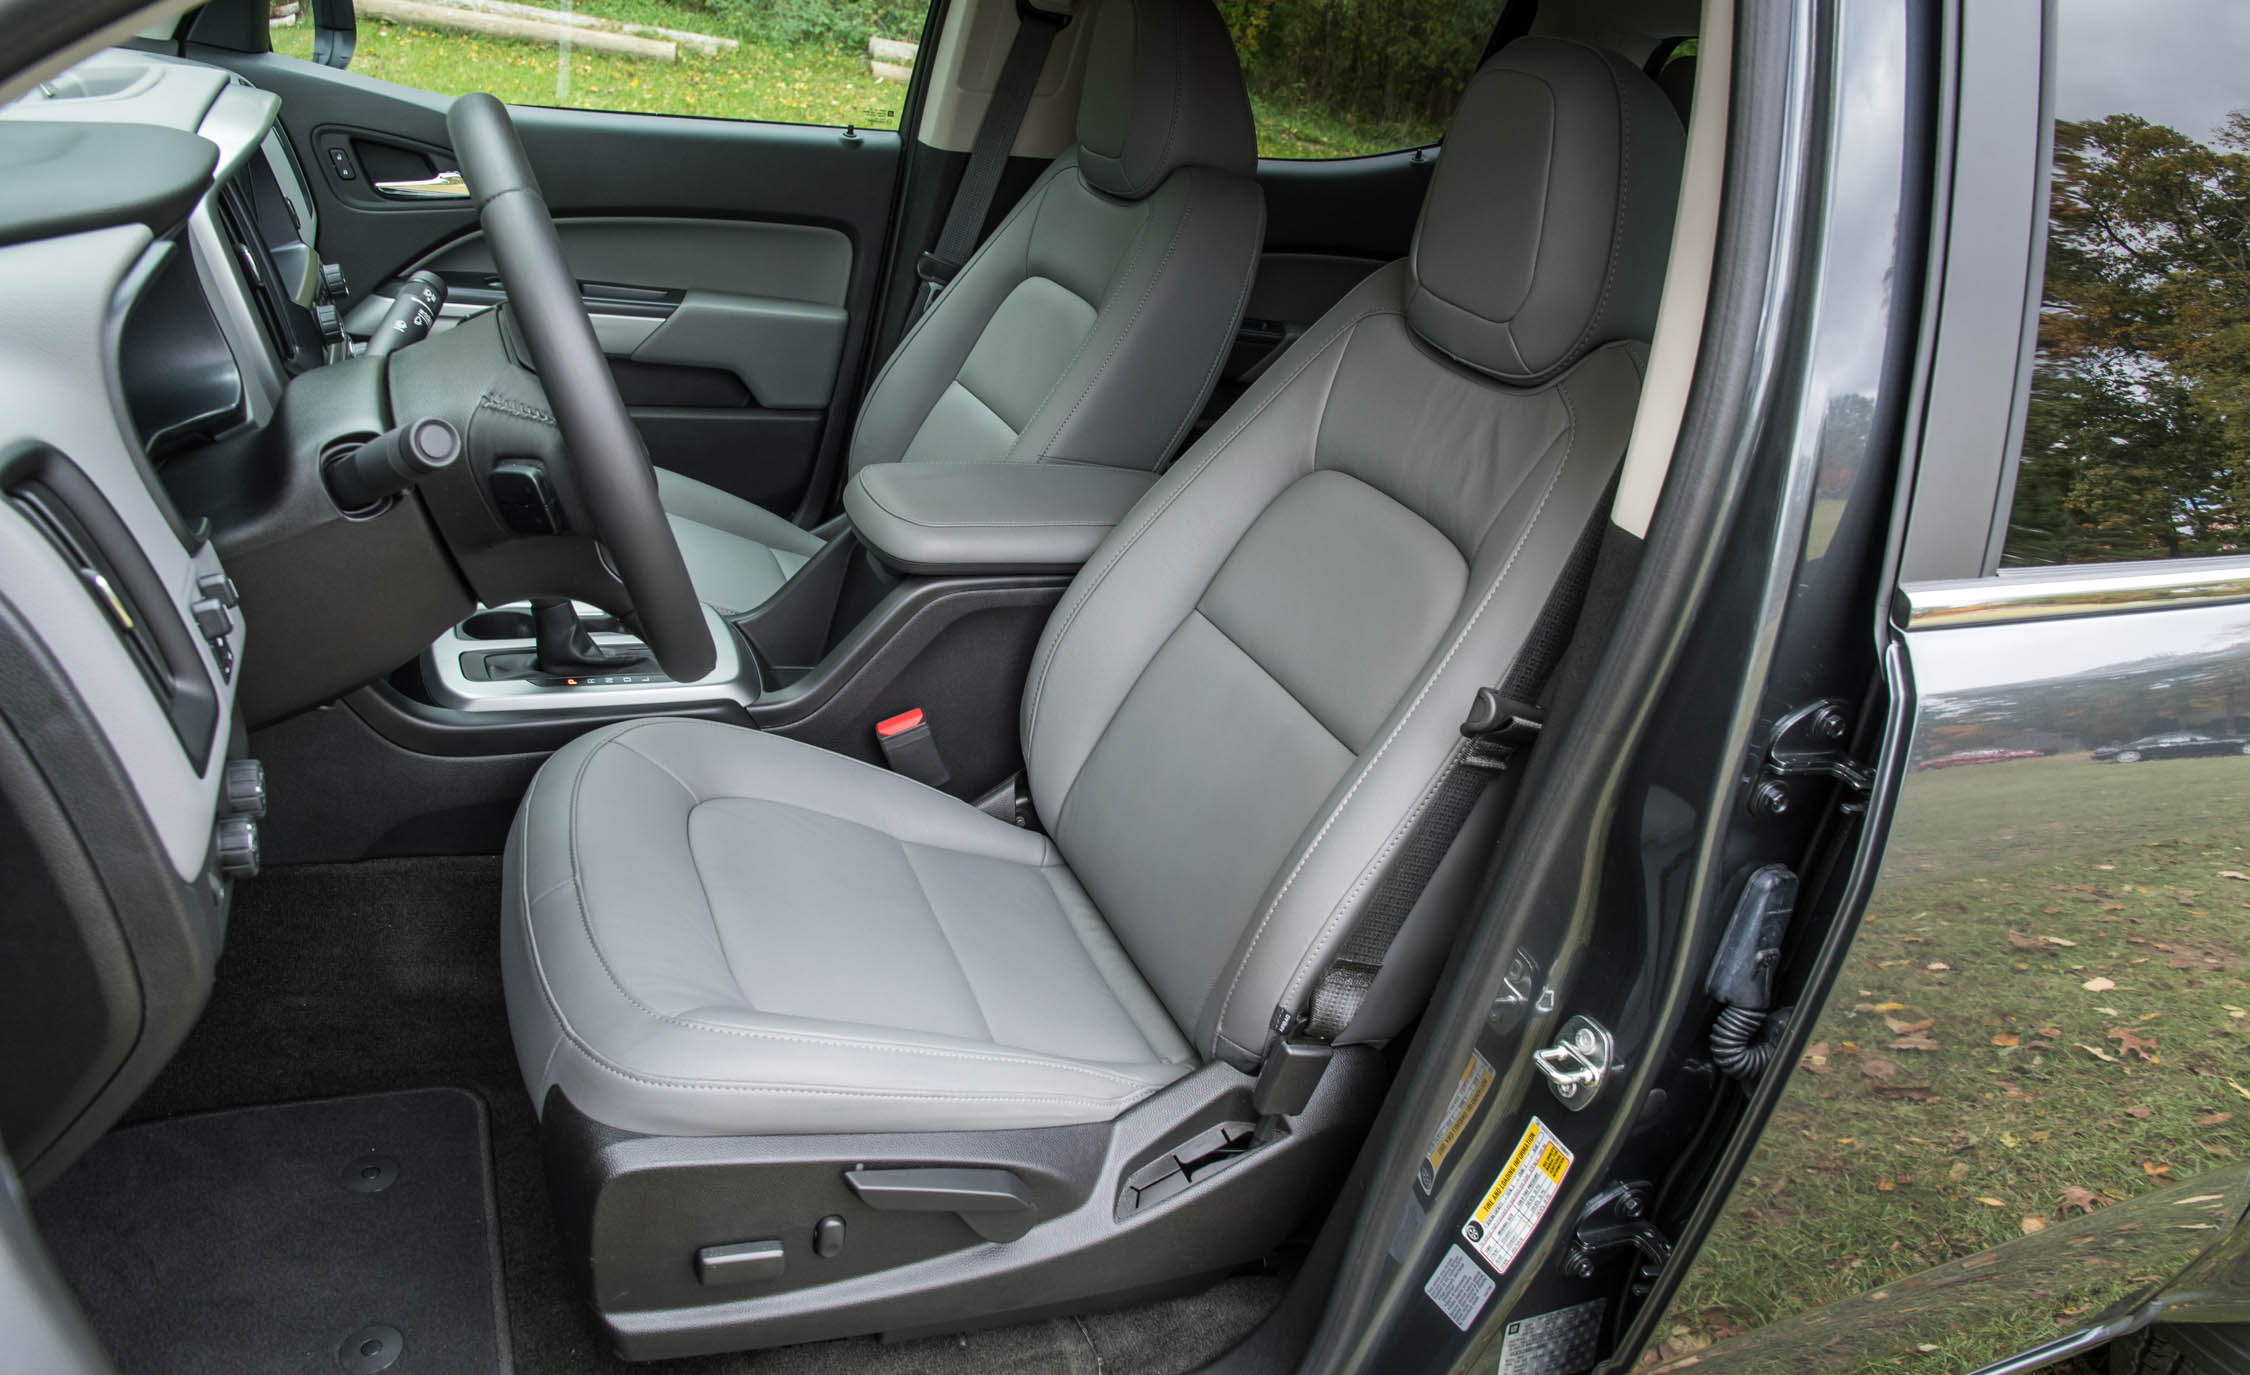 2017 Chevrolet Colorado LT Interior Seats Cockpit (View 18 of 41)